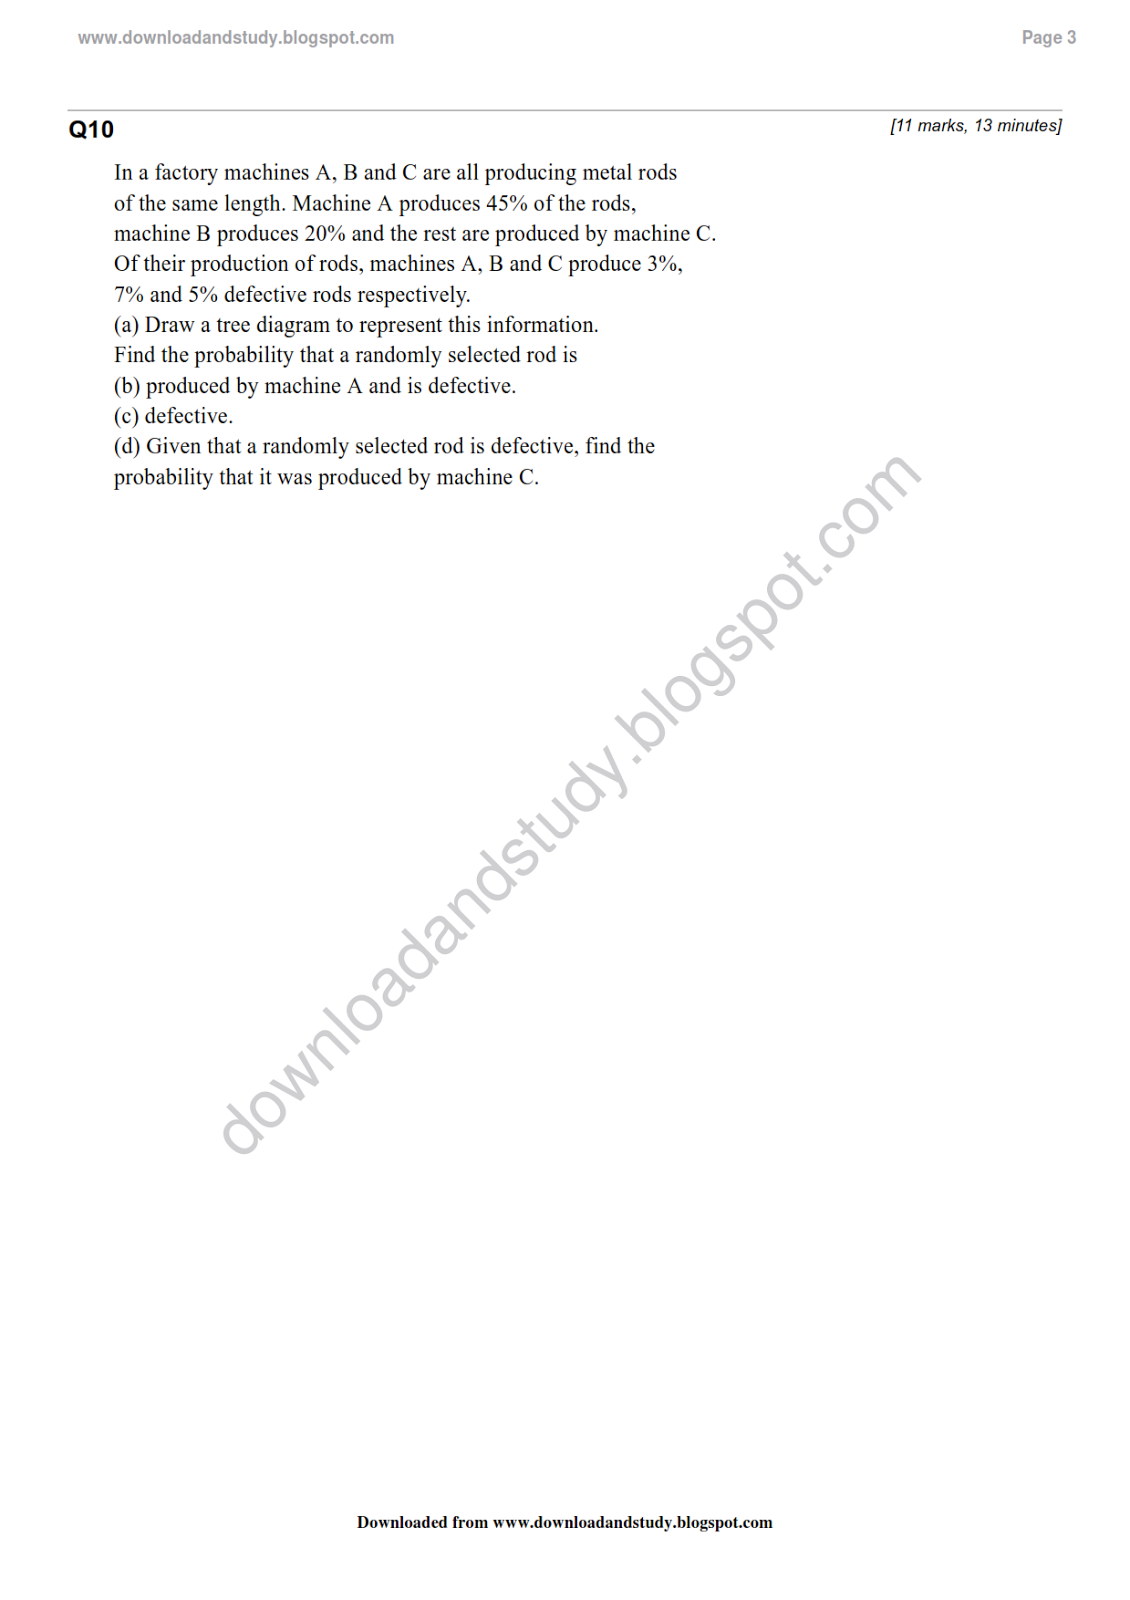 Download Amp Study As Statistics Probability Revision Test Worksheet Solved